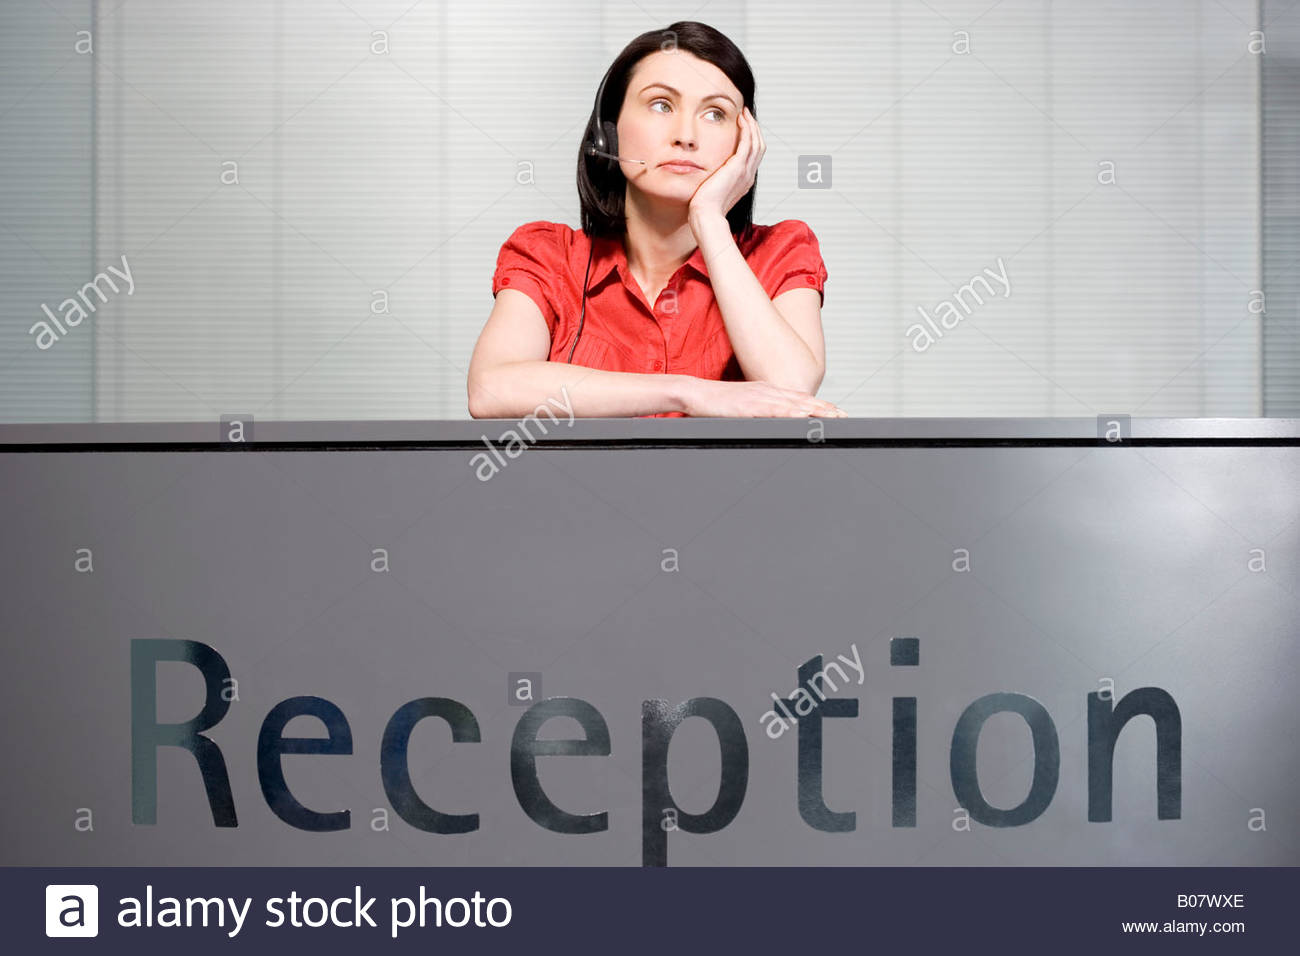 Office Receptionist In A Red Blouse Looking Bored Stock